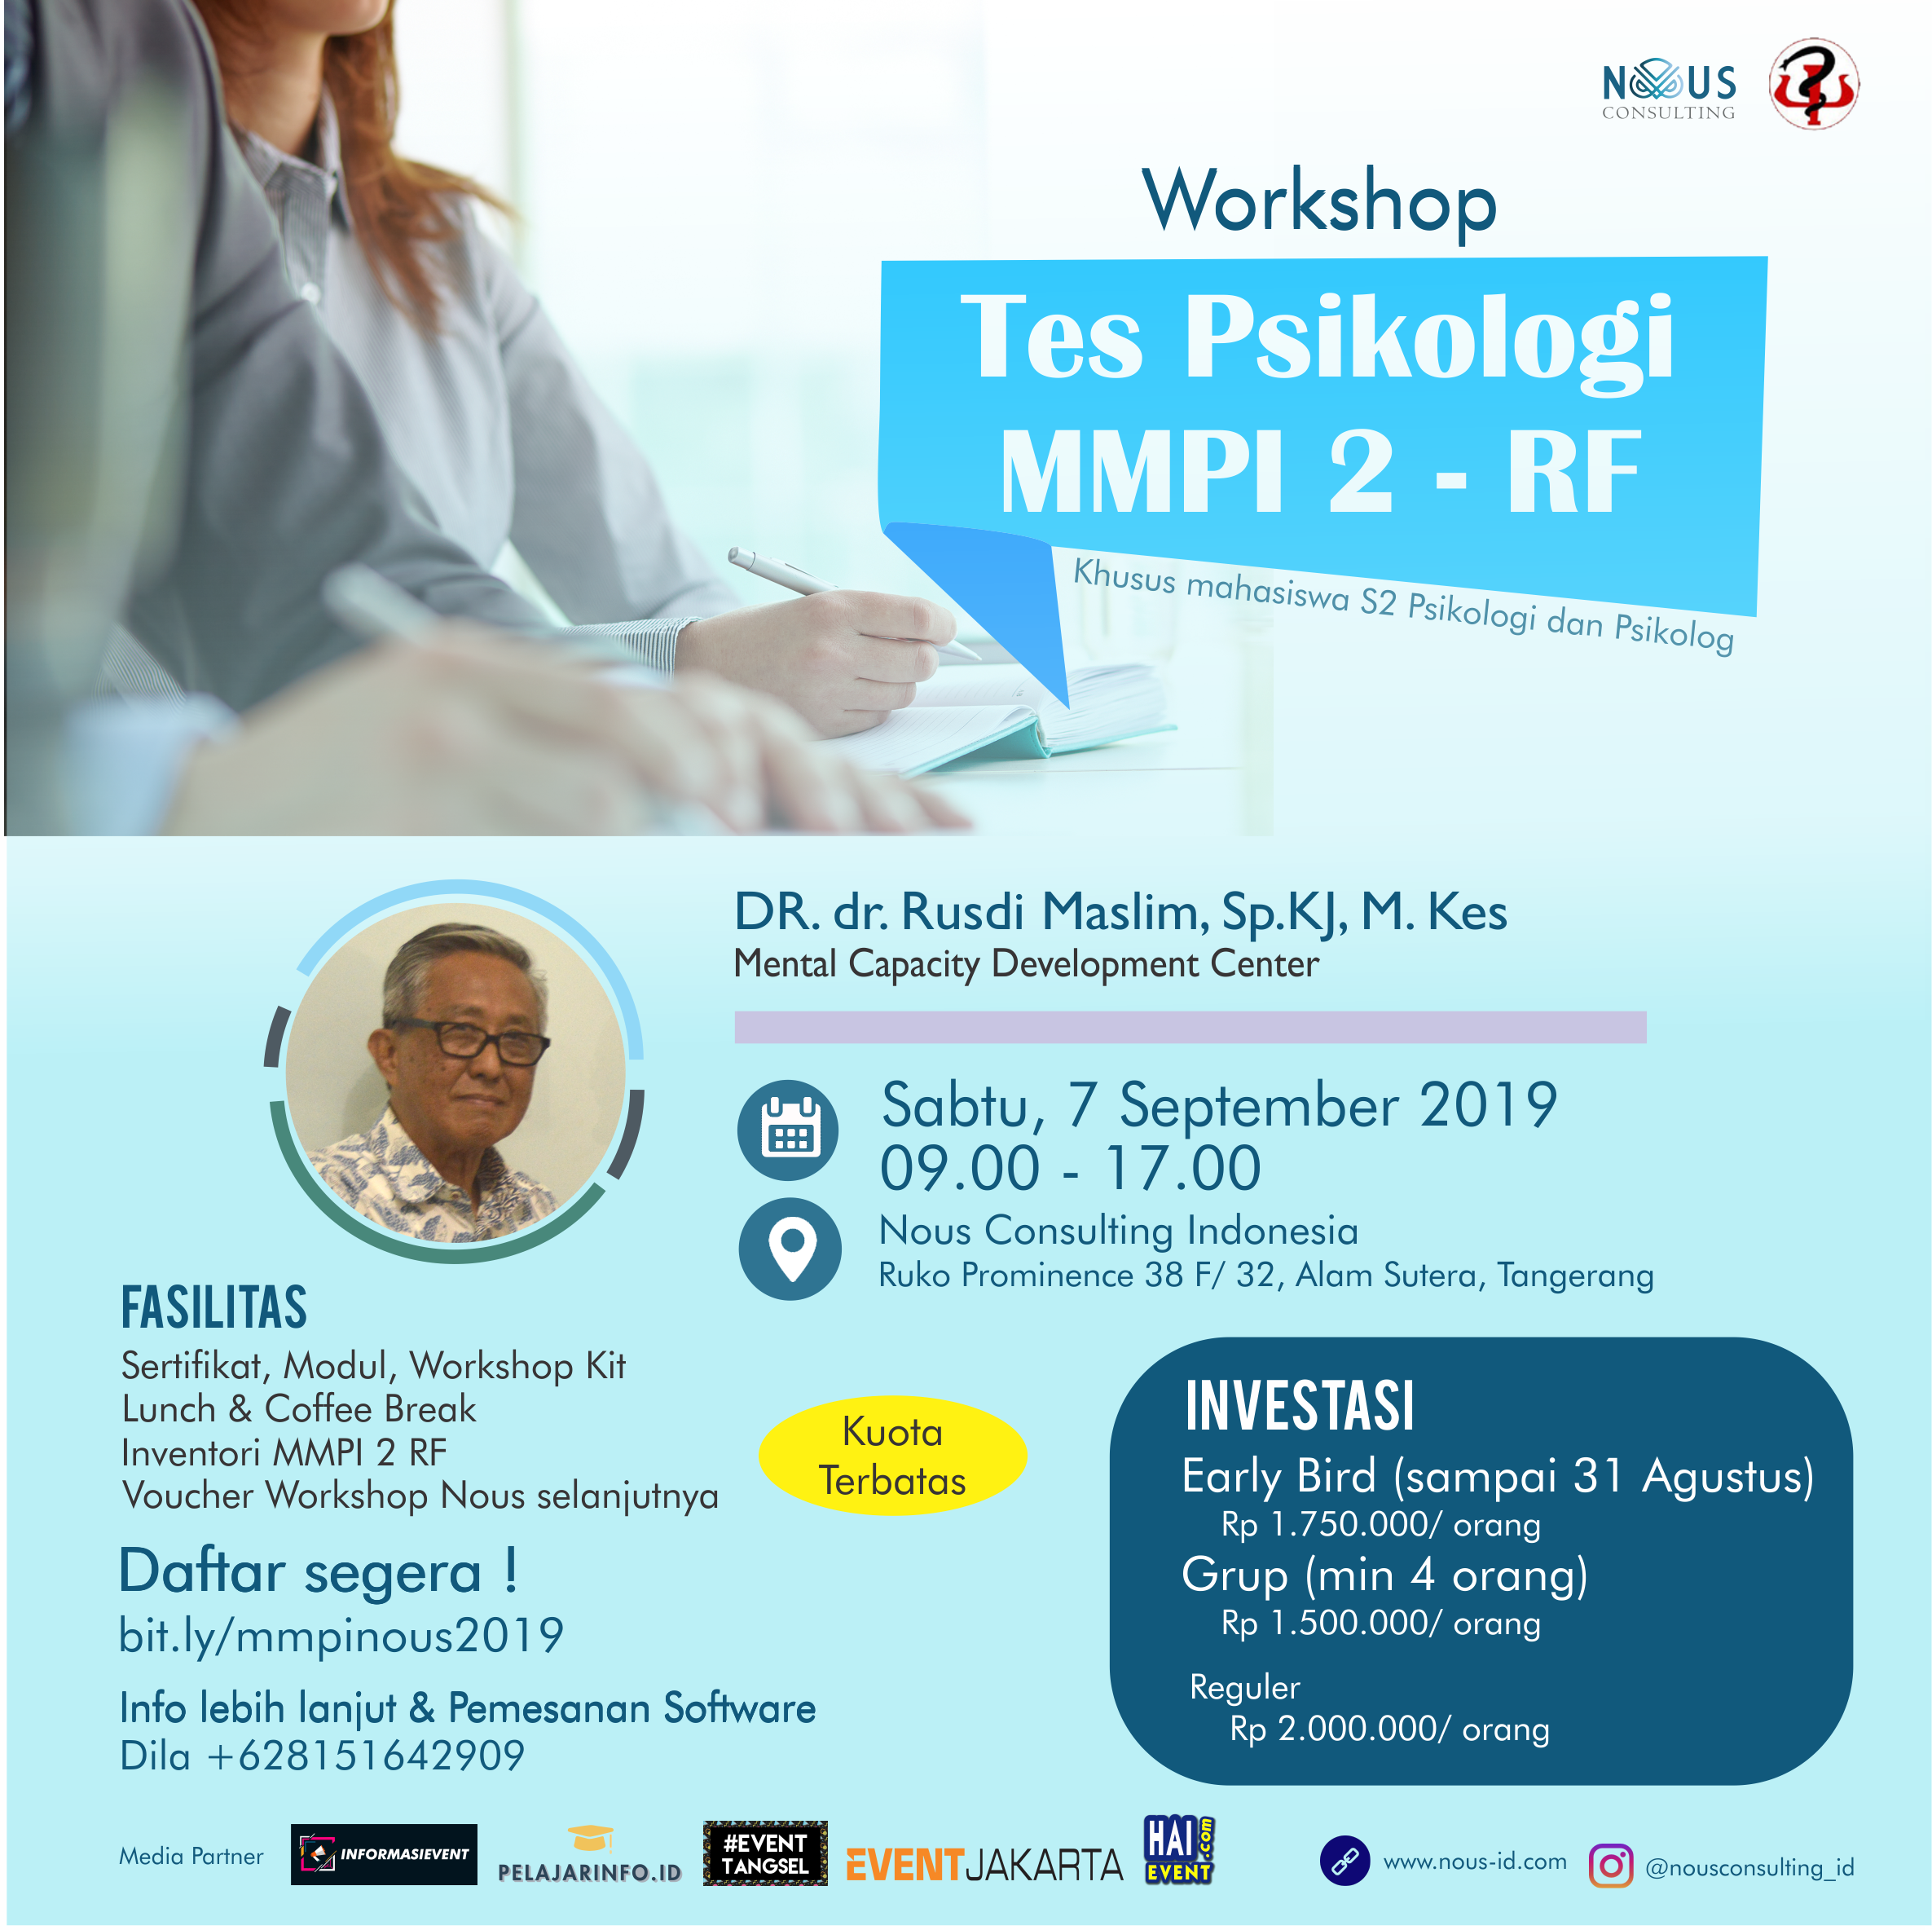 Workshop 2019 : Tes Psikologi MMPI 2 - RF